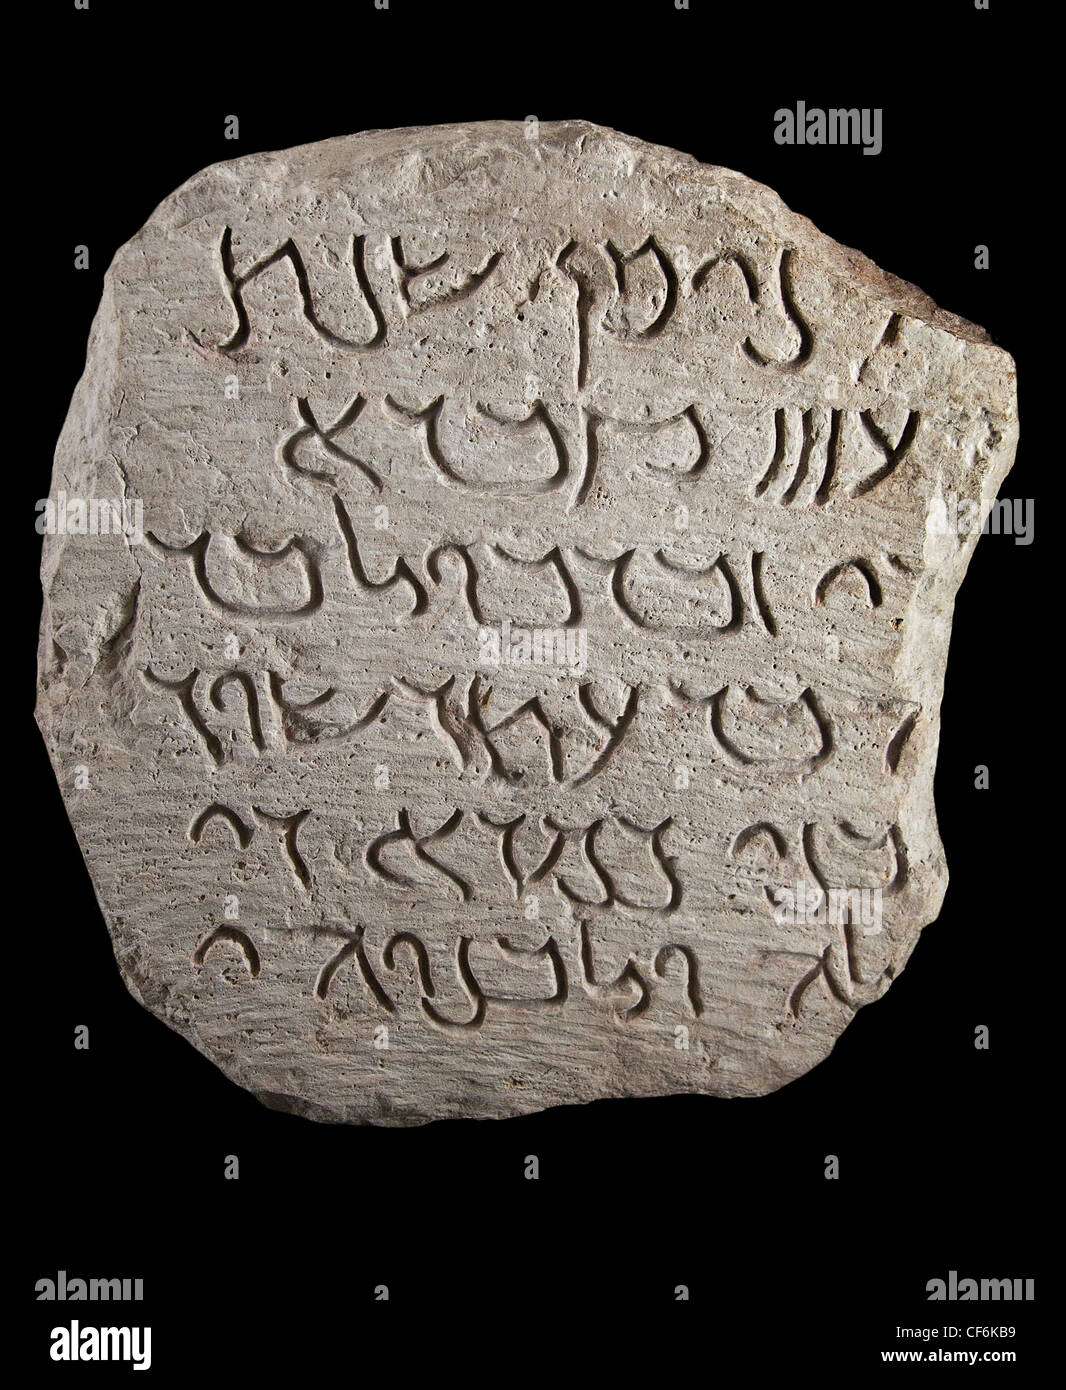 Slab bearing registration year funeral Tadmor Palmyra Syria 4 BC inscription the month of Nisan in the year 308 - Stock Image